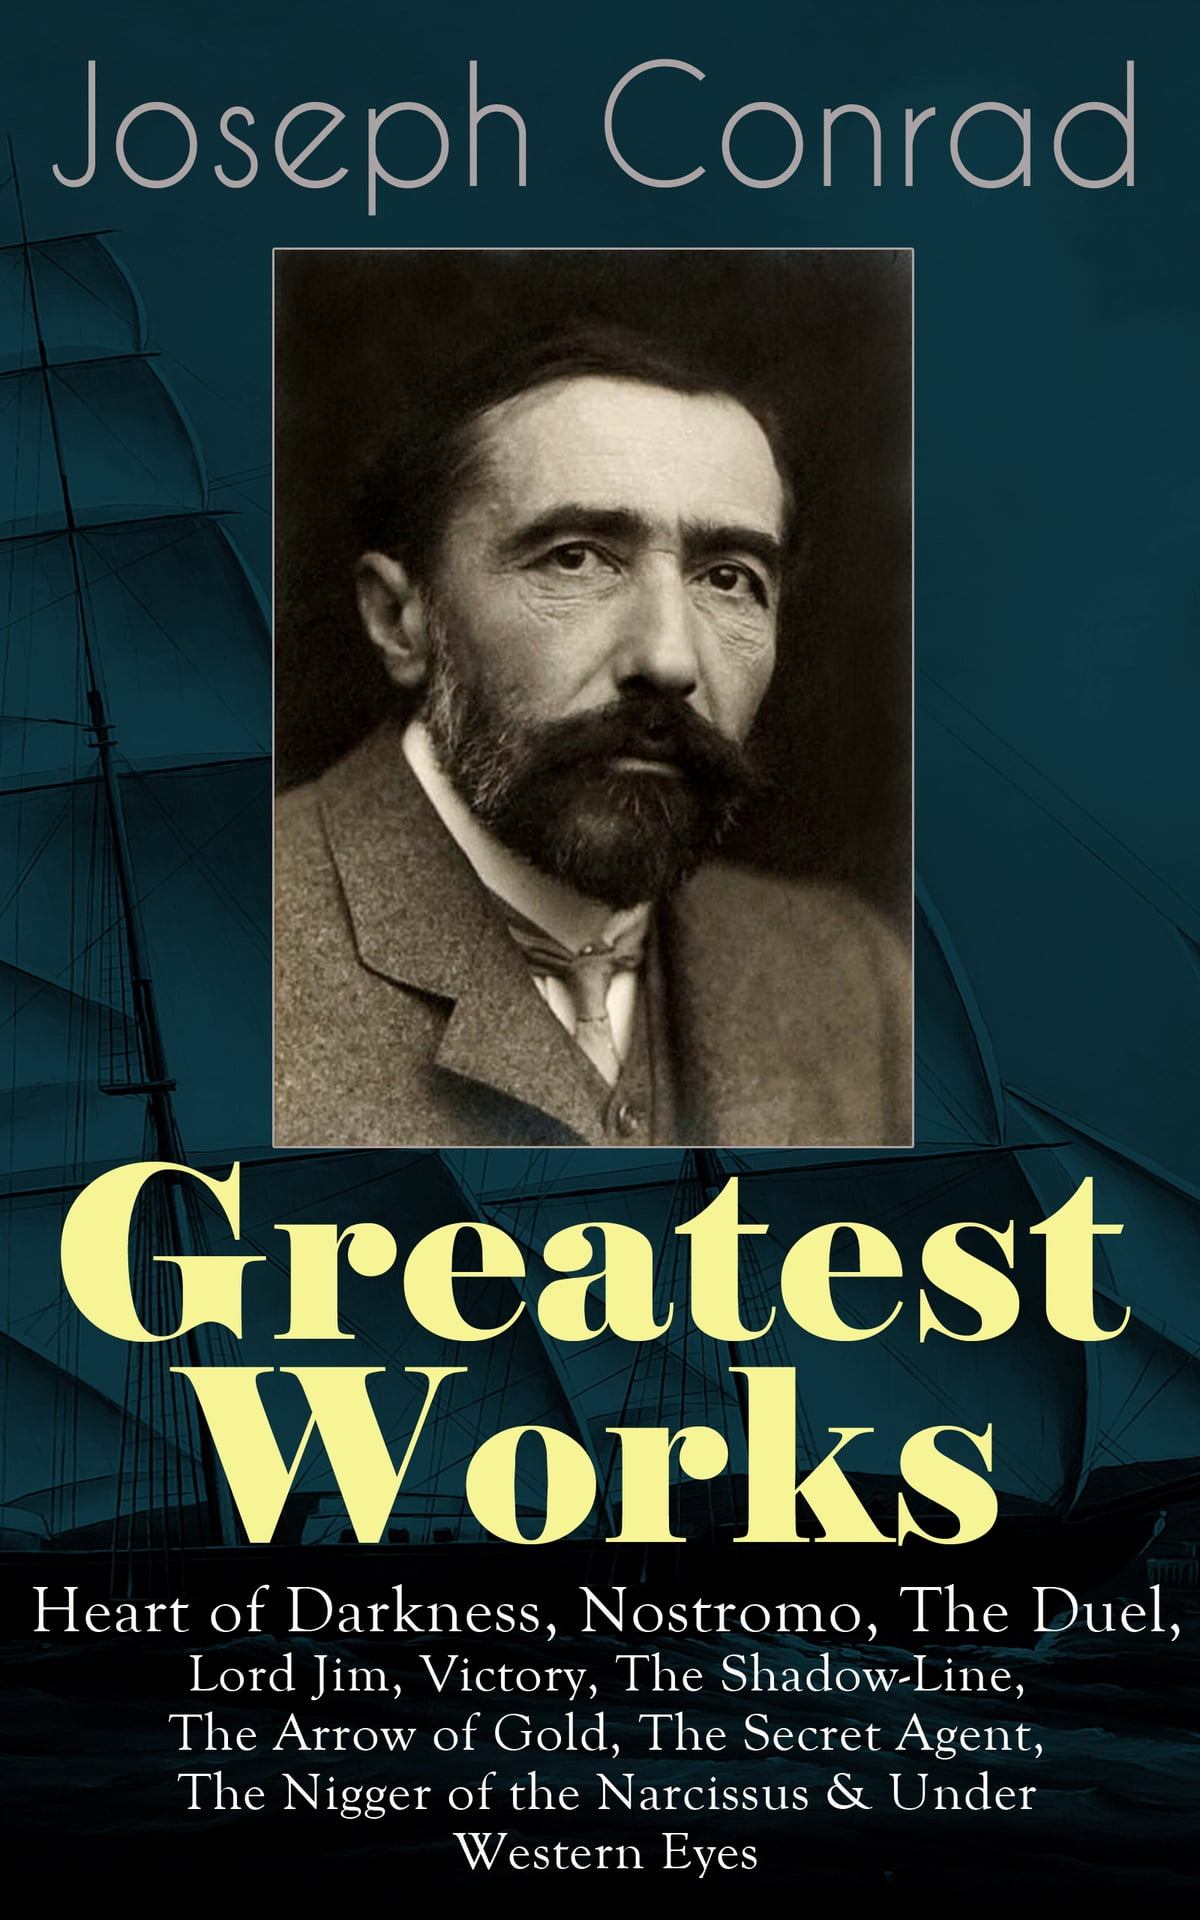 Greatest works of joseph conrad heart of darkness nostromo the greatest works of joseph conrad heart of darkness nostromo the duel lord jim victory the shadow line the arrow of gold the secret agent fandeluxe PDF